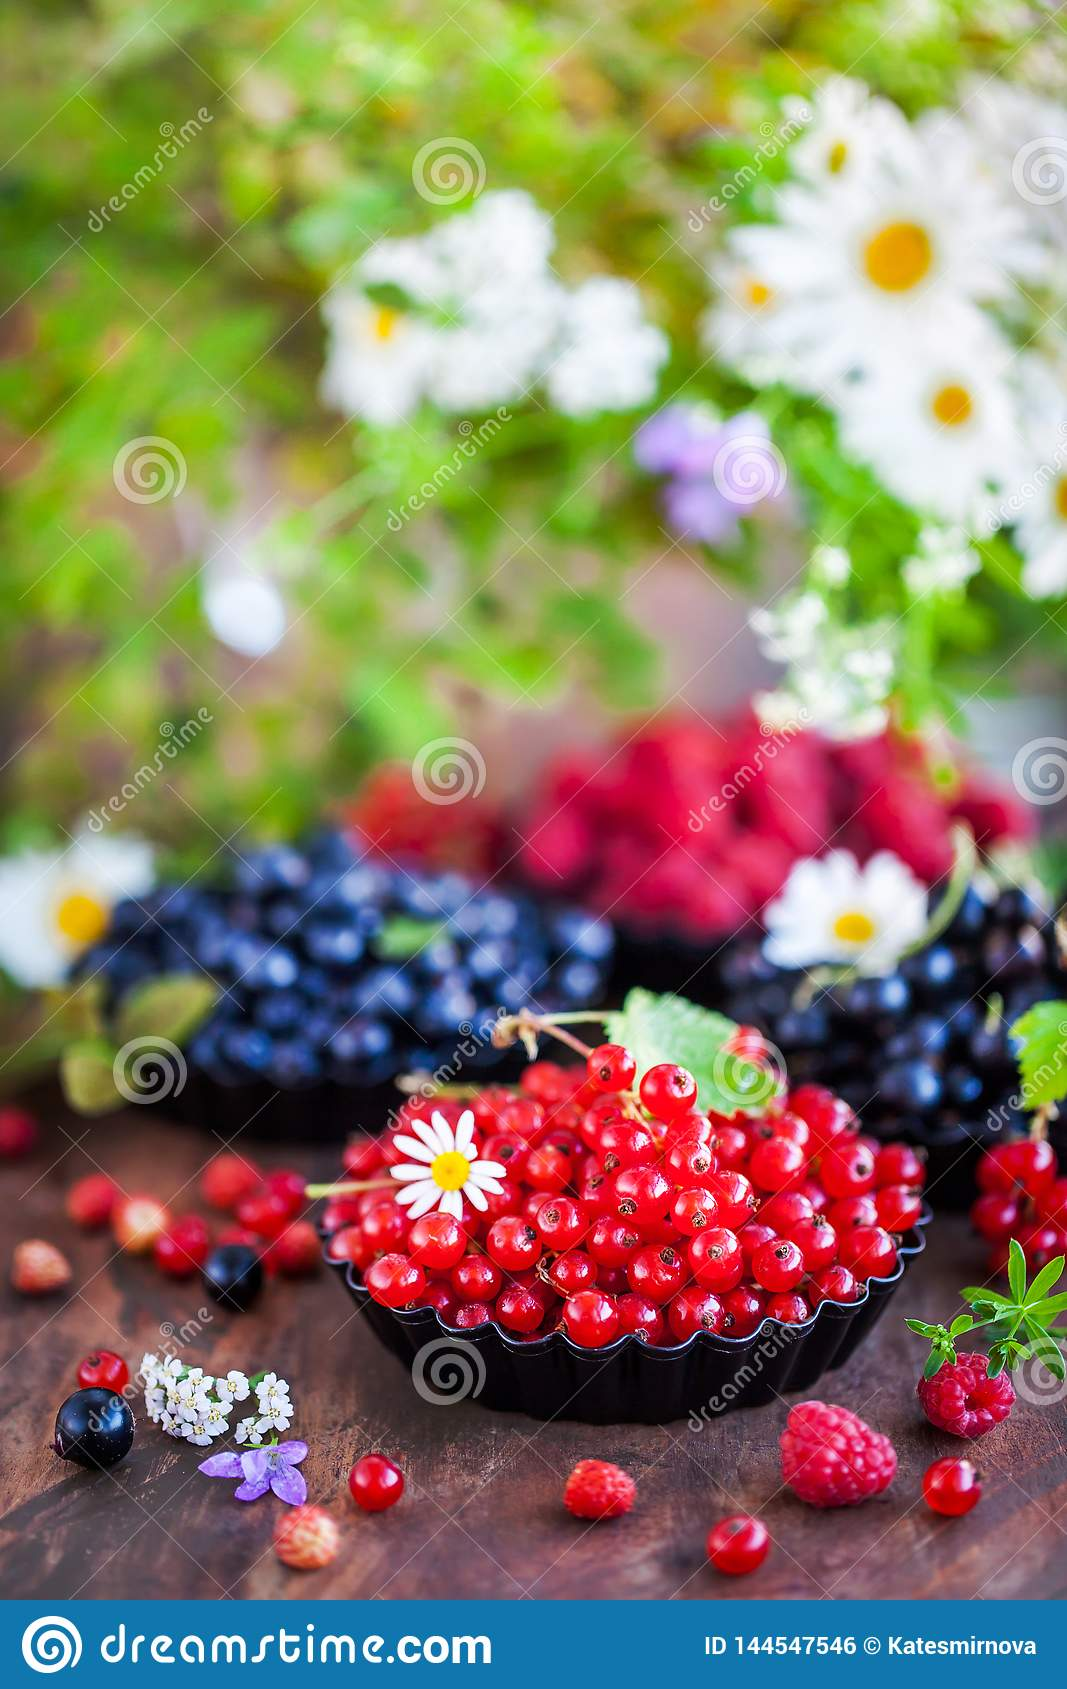 Fresh ripe summer berries - red currant in the foreground and black currant, blueberry, raspberry